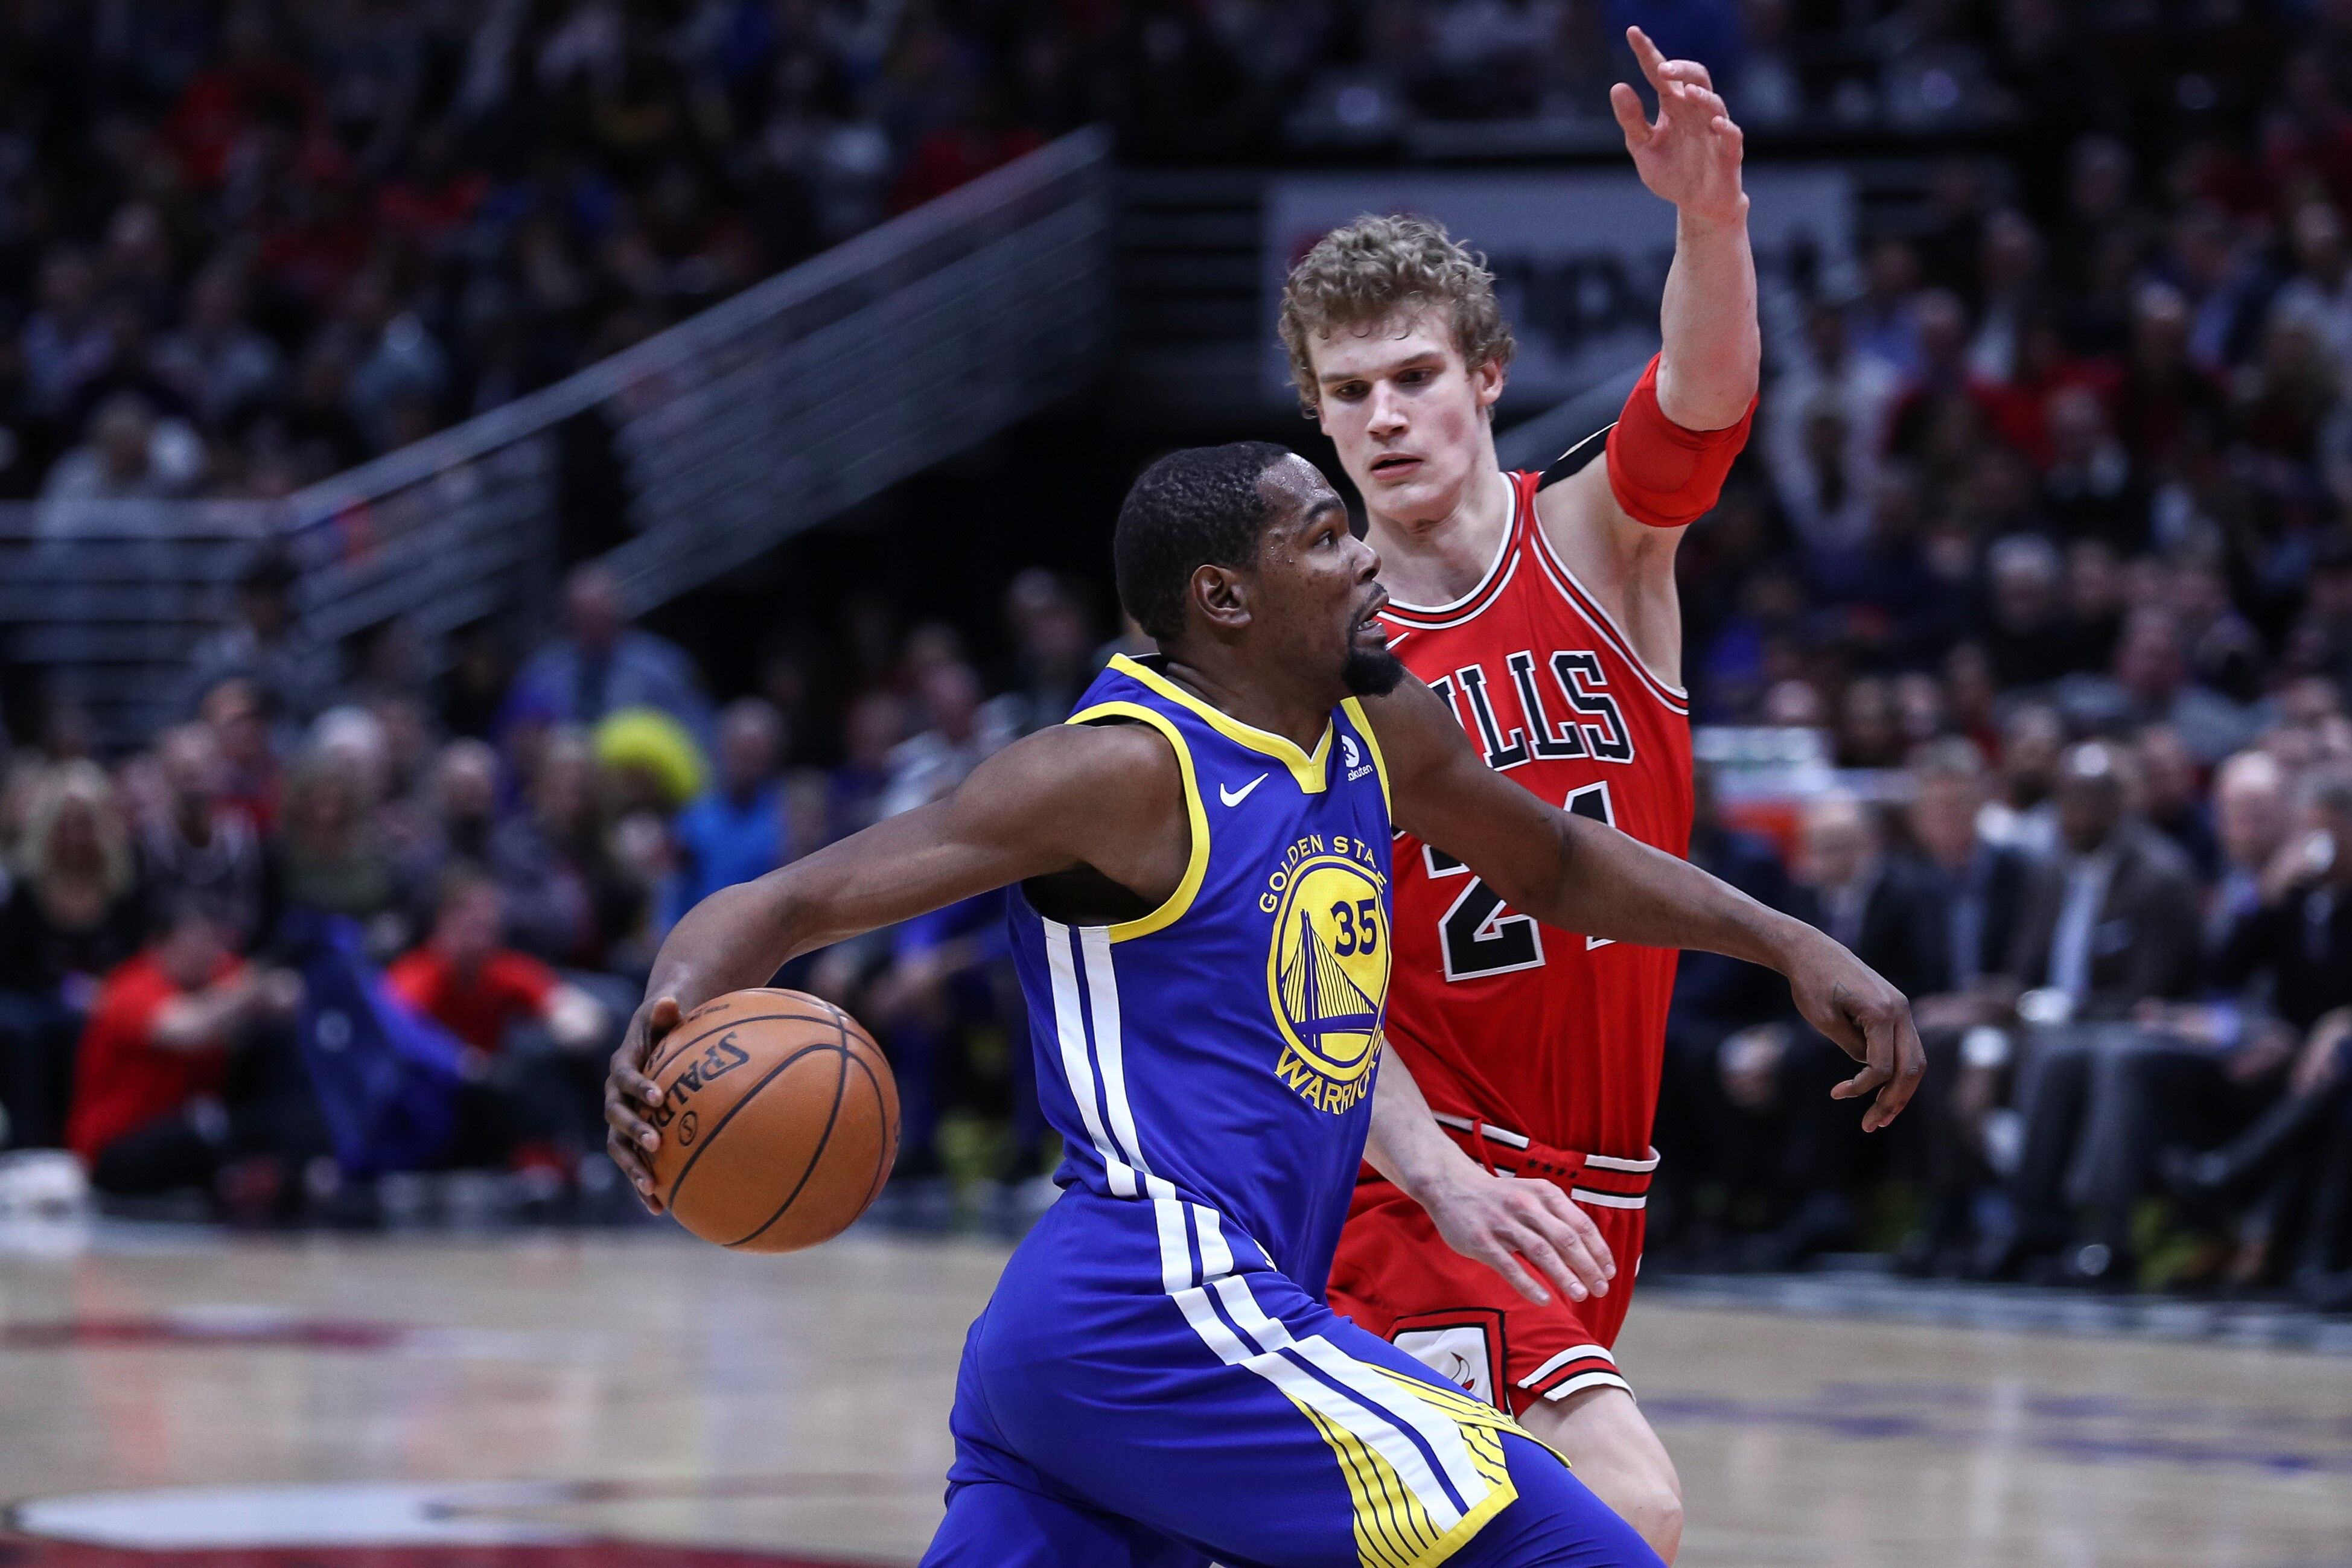 906284262-chicago-bulls-vs-golden-state-warriors-nba.jpg